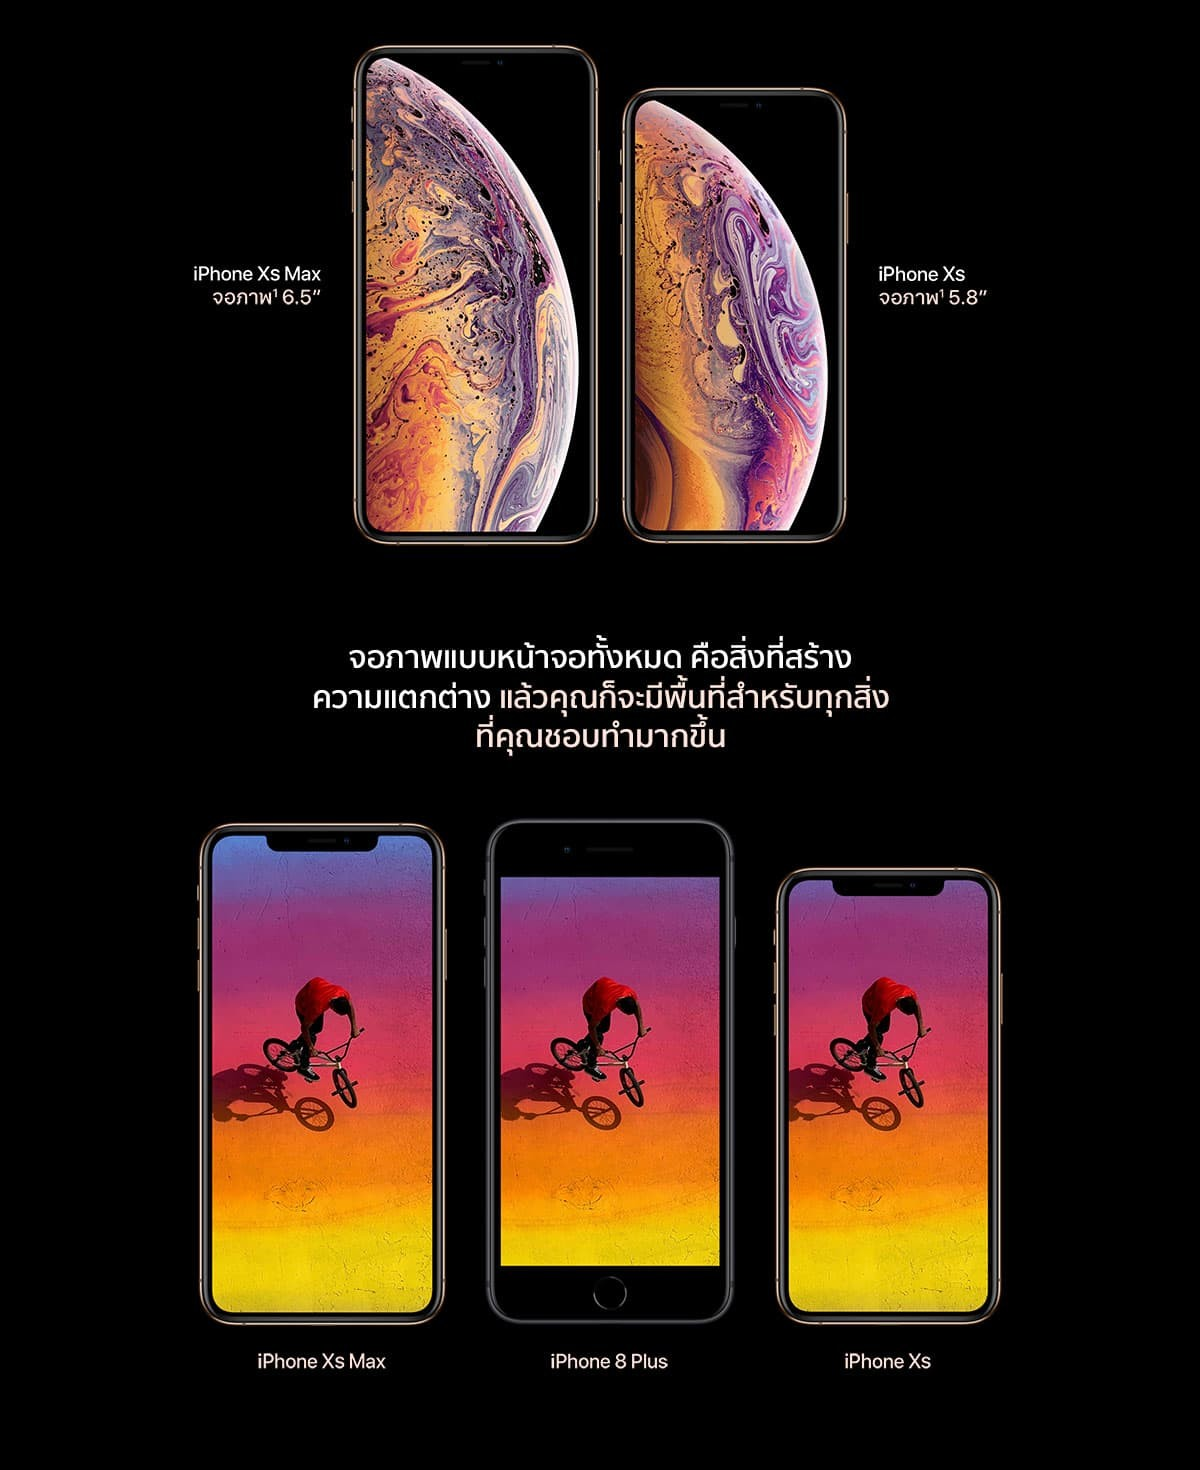 iphone-xs-detail-1_04.jpg